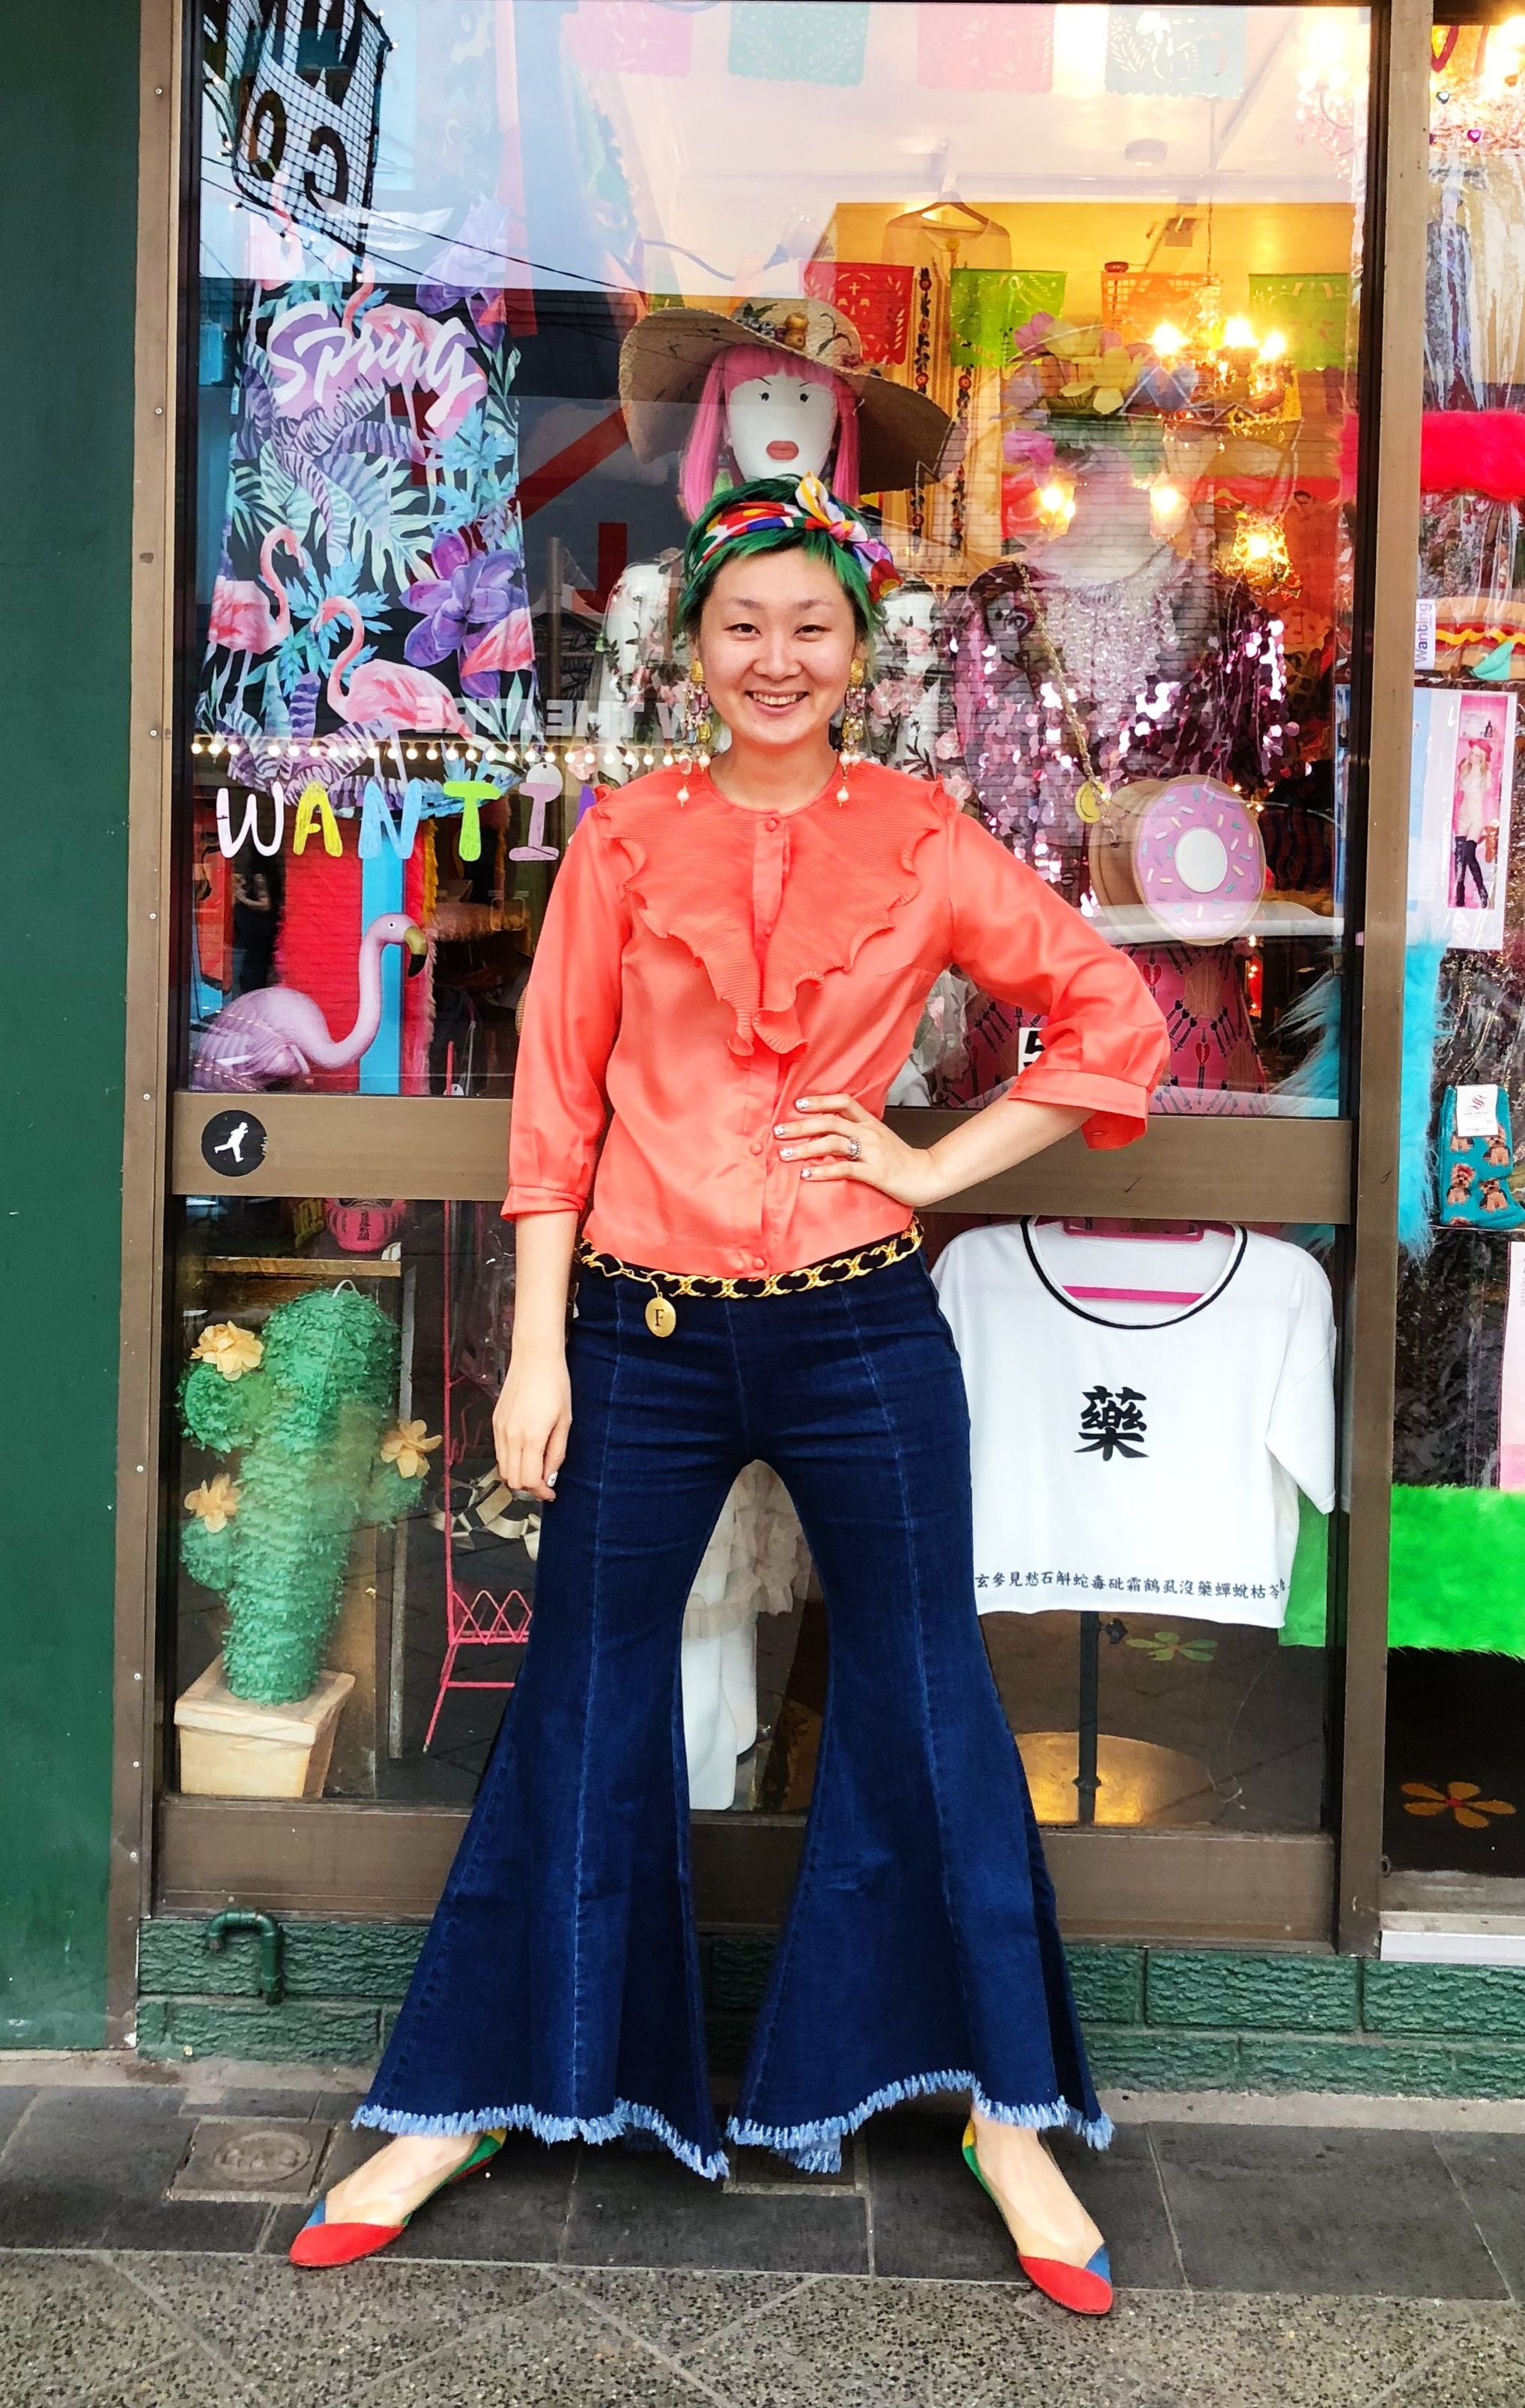 Our founder  Wanting is Emily's translated Chinese name, she alway thought it was a great name for a future project. Emily started Wanting Collection while she was obtaining her Honours degree in Science.  She a loves colour,clothes, taking risks and when the opportunity came to do a causal weekend market stall she went in with only a table, her heart and a box of brightly coloured socks. The enterprise was inspiring, so much so she created a business.  After finishing her studies her life path took an unexpected direction when she opened her first shop in Newtown. Emily believes in hard work, honesty and collaborative relationships.  She travels internationally very often to find and hand pick the items that give Wanting Collection its unique character and soul, she tries to introduce and share new and interesting things to her friends back in Sydney.  Emily's objective for Wanting collection is to showcase talent, diversity and positivity. She has alway dreamed of a colourful wonderland, now she is living her dream. The power of Wanting Collection made this happen :) Dream big, it will happen, it must!